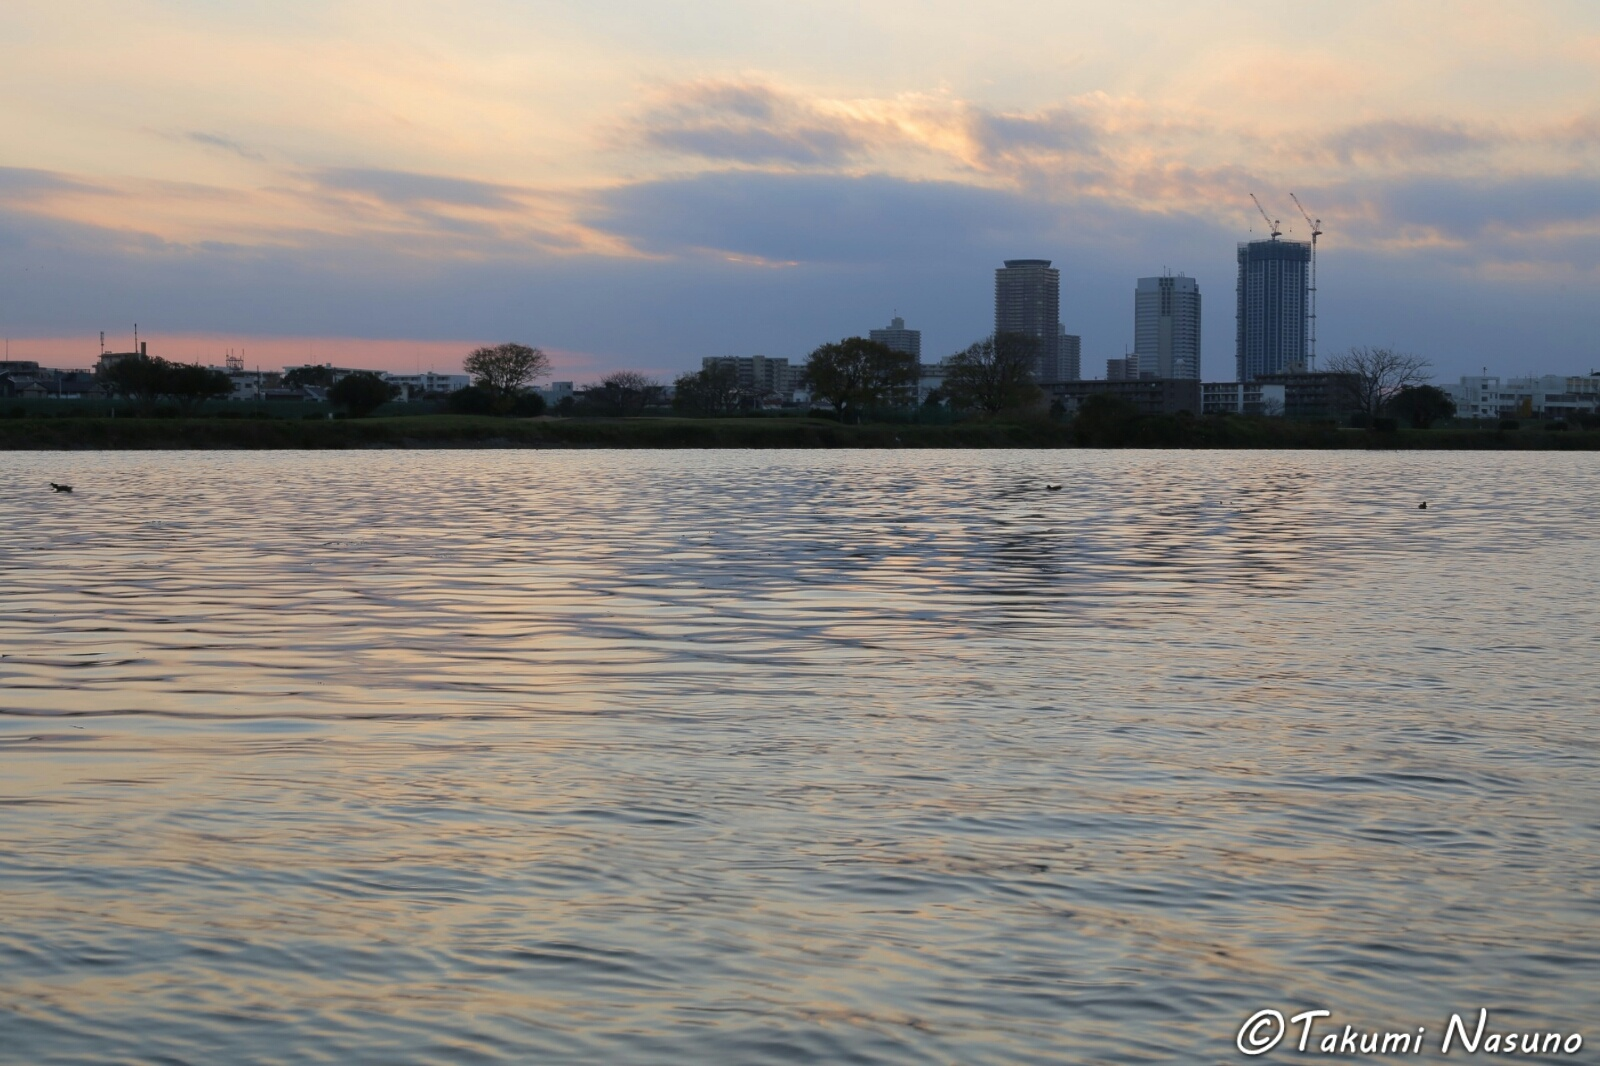 Sunset over Tama River